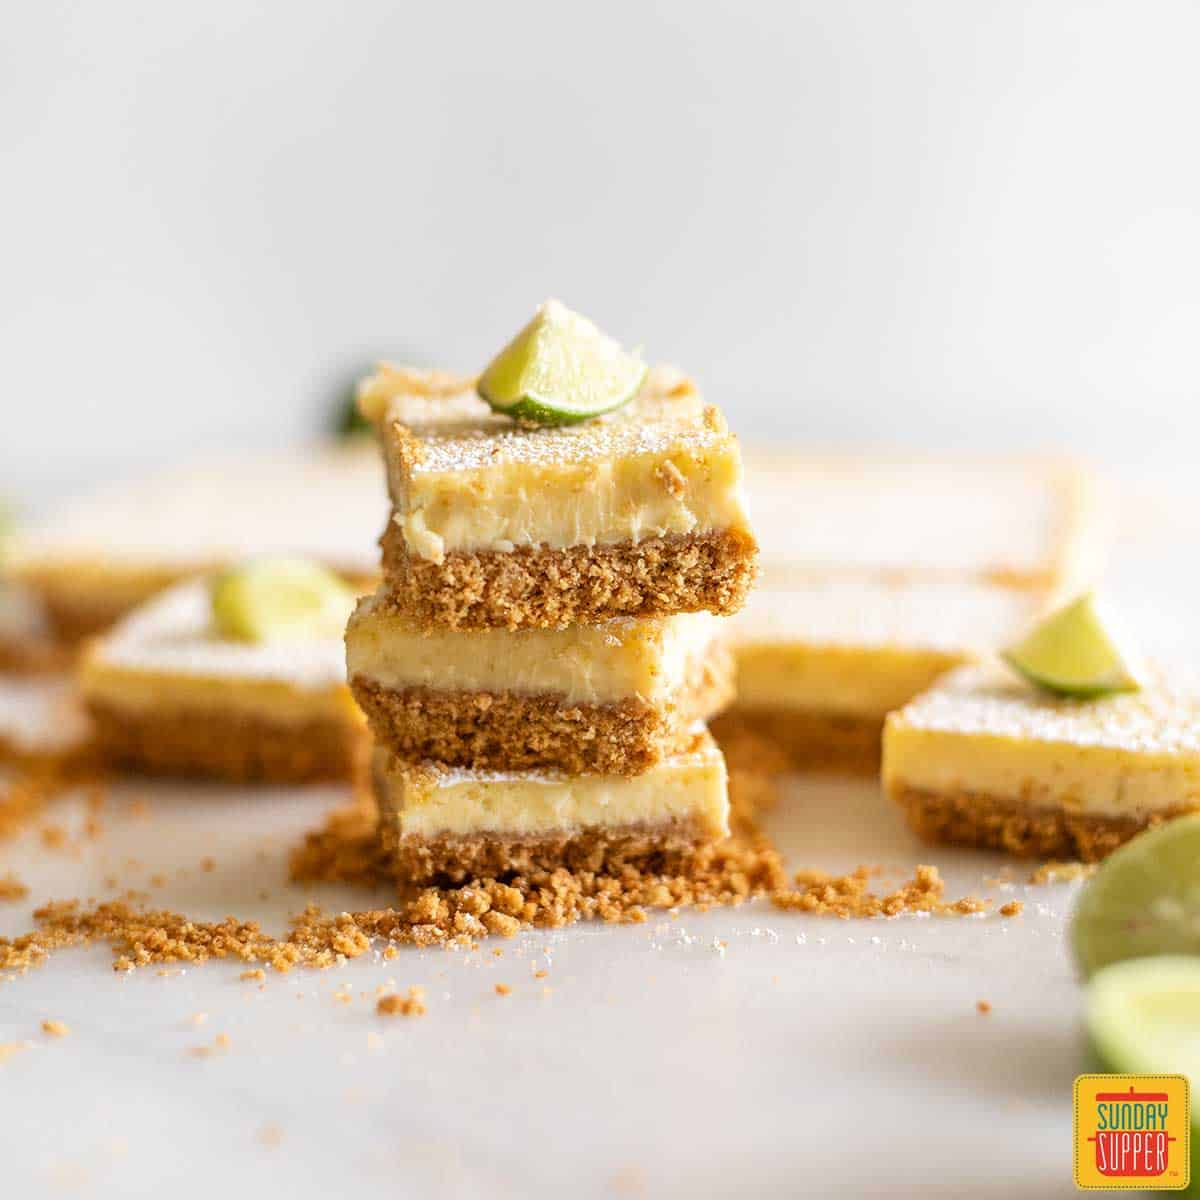 A stack of three key lime pie bars next to the remaining pie squares